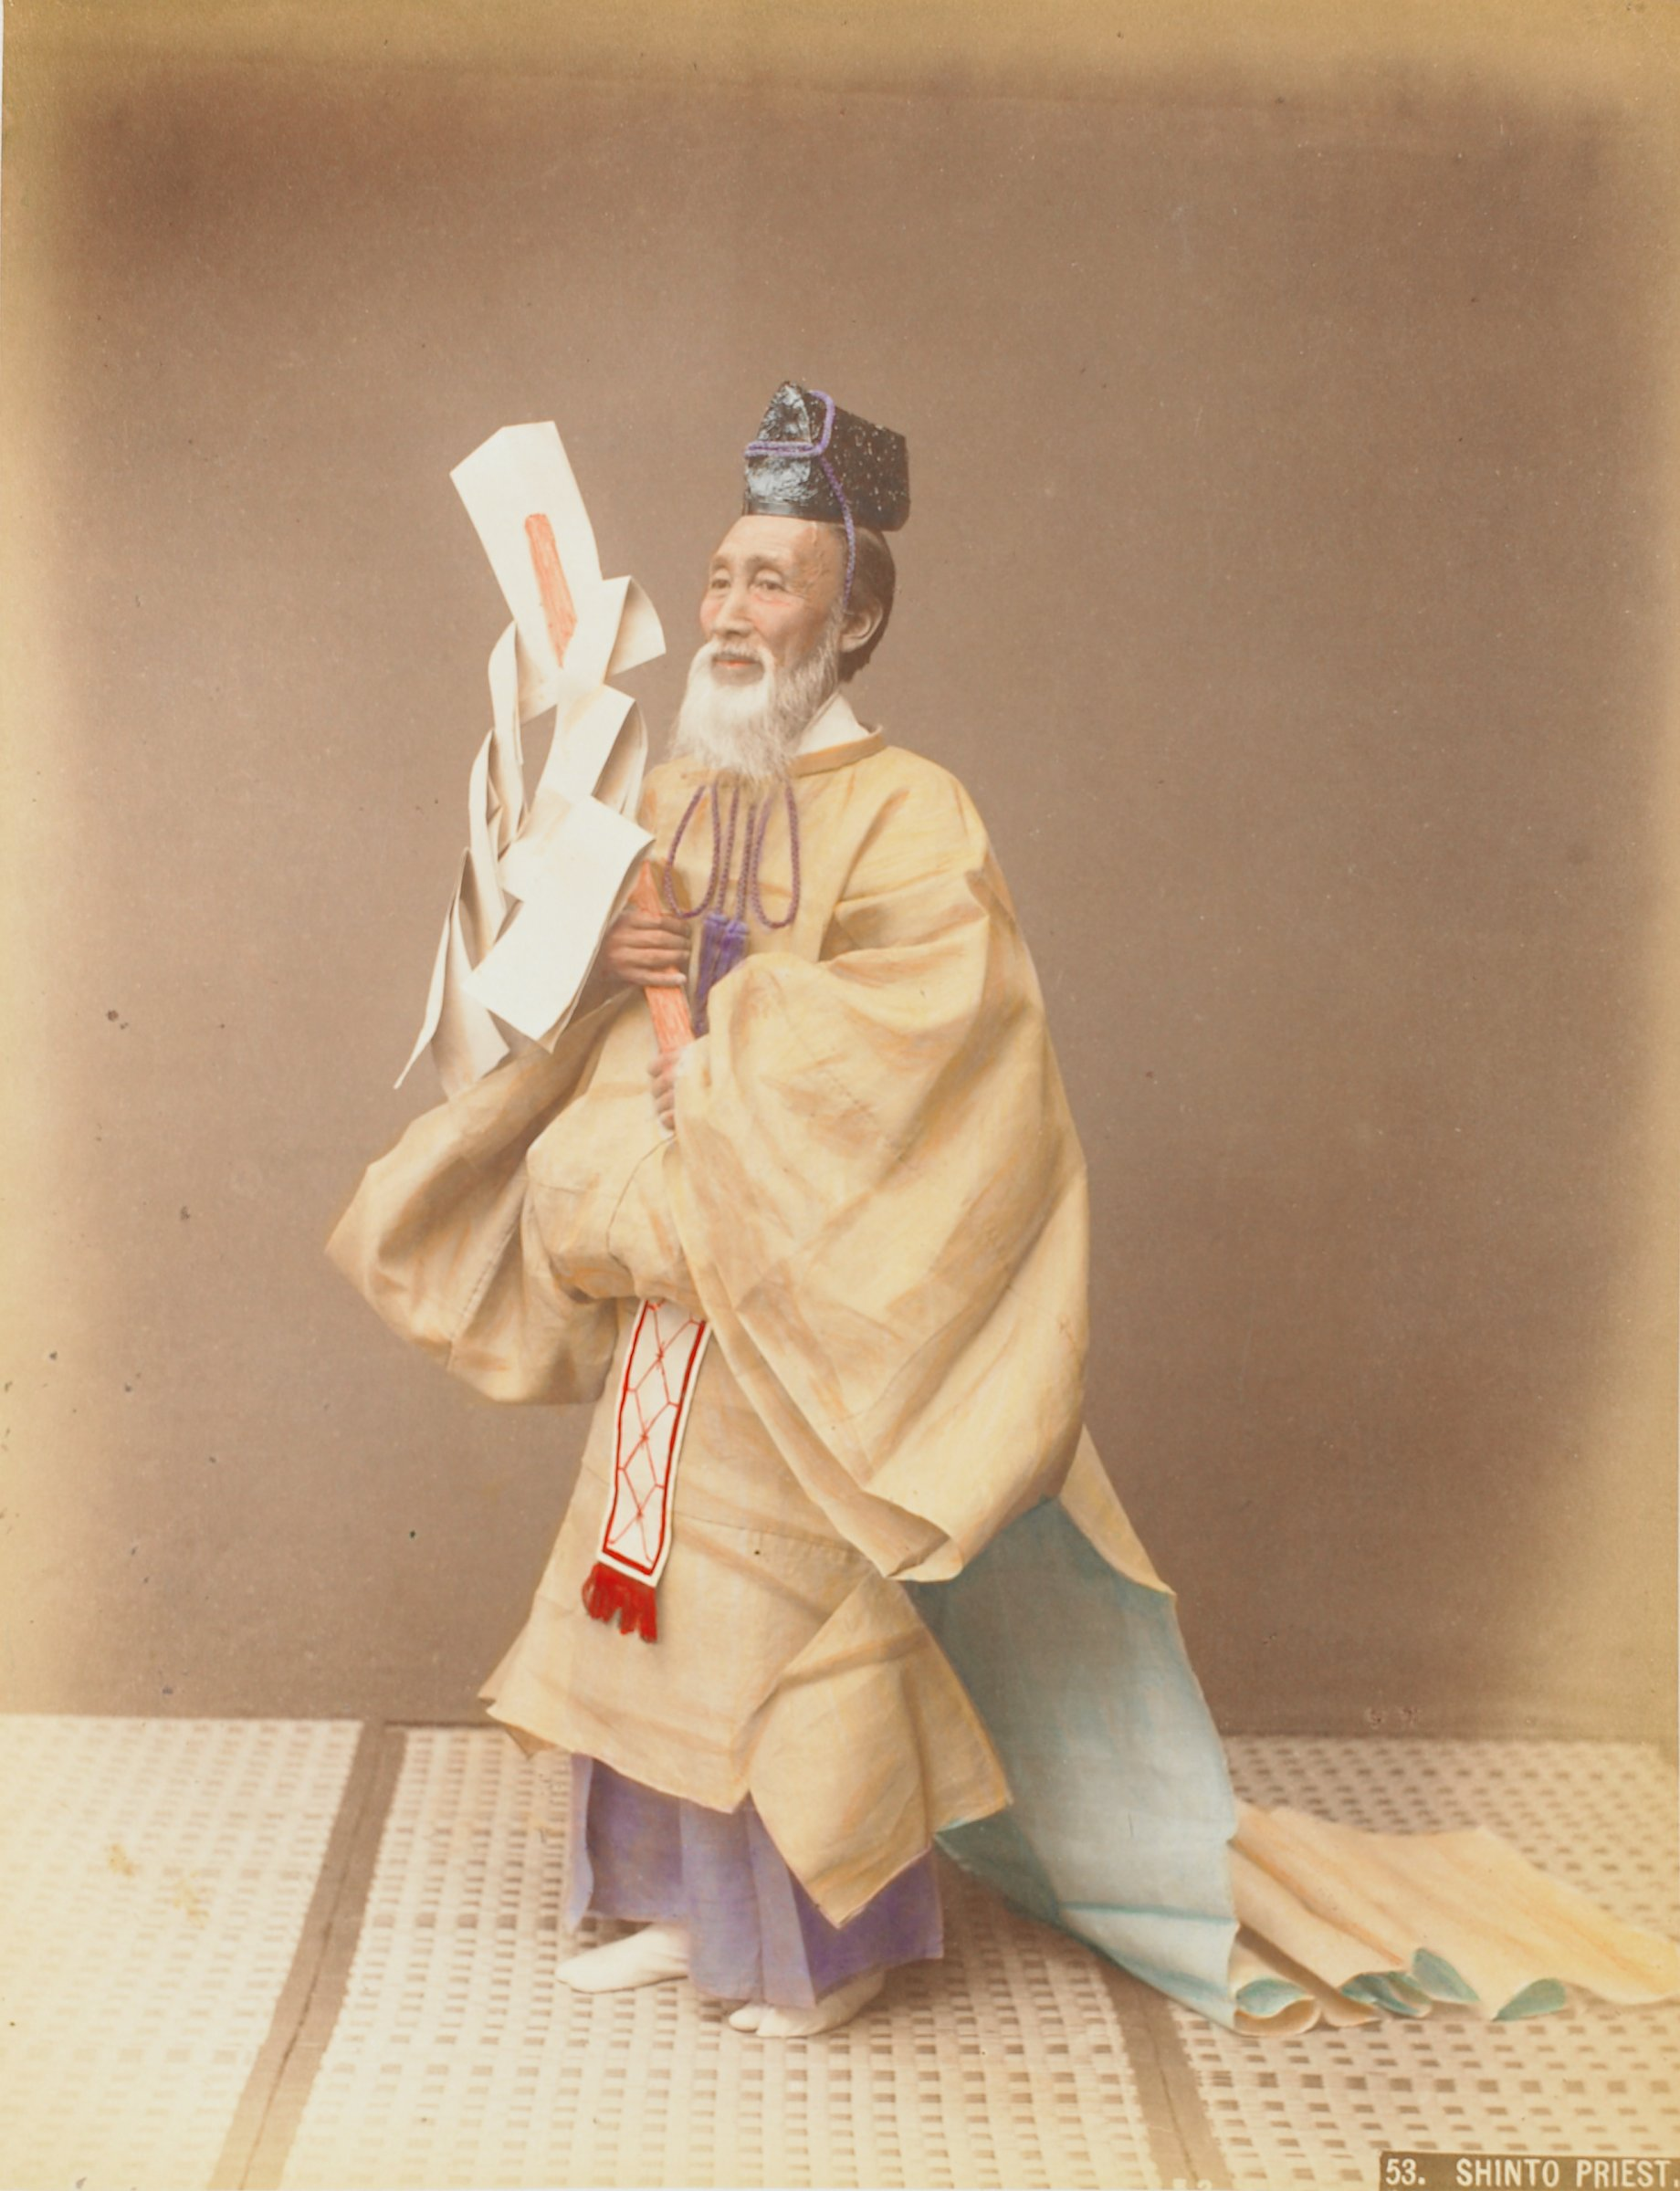 Winter Costume (.4, recto); Shinto Priest (.5, verso), Attributed to Kusakabe Kimbei, hand-colored albumen prints mounted to album page